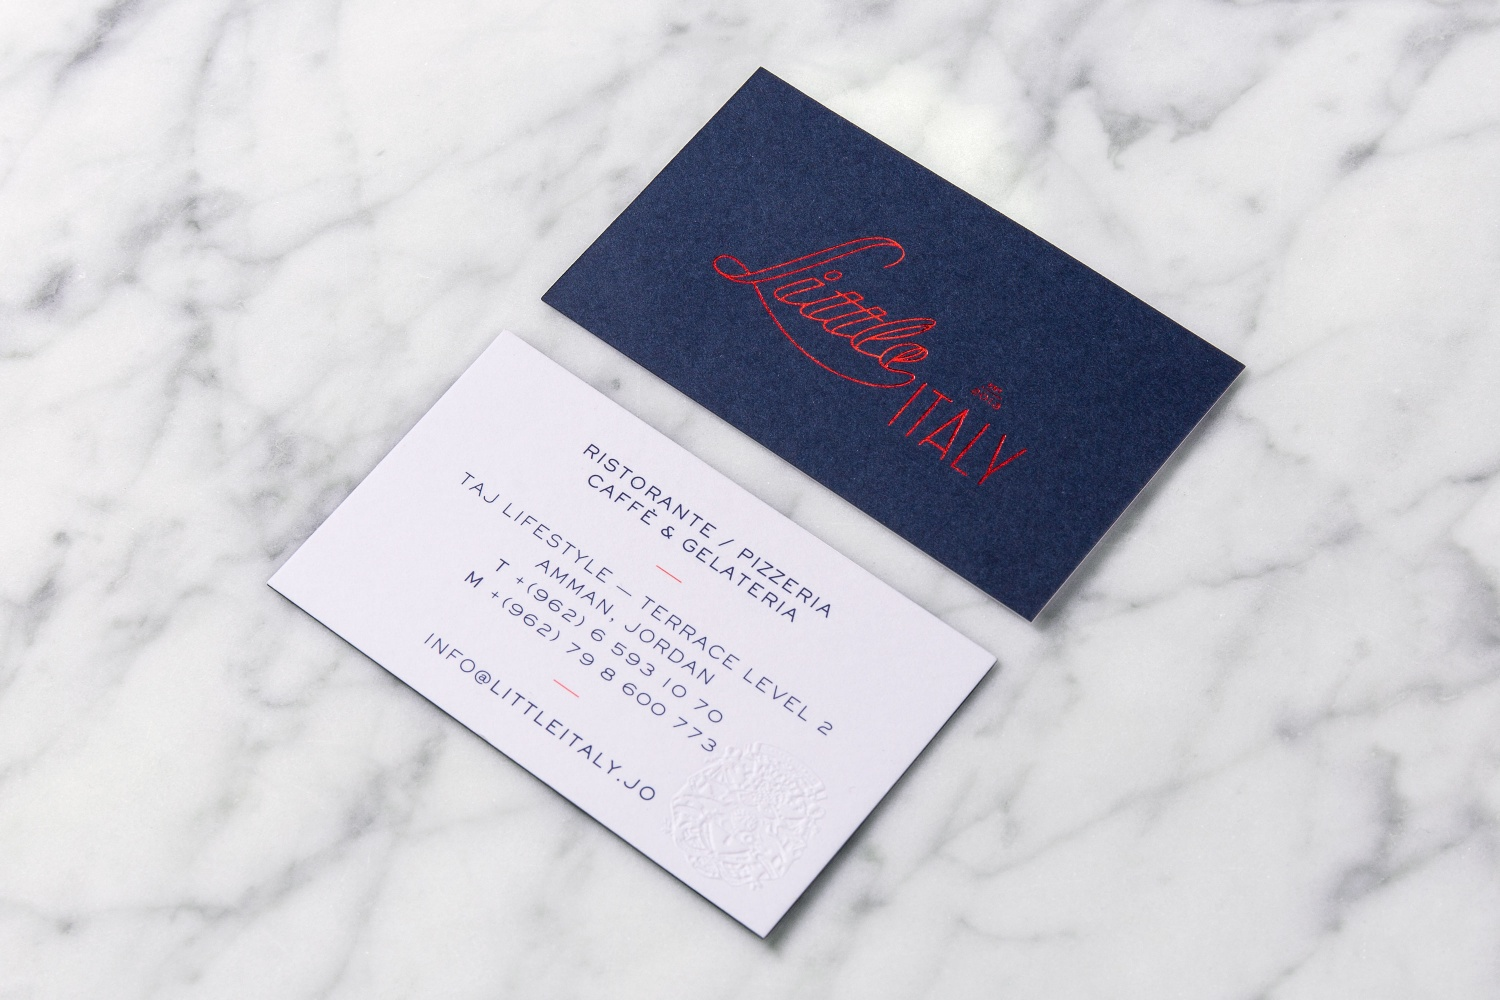 Brand identity and business cards by British studio Here Design for Amman-based restaurant Little Italy